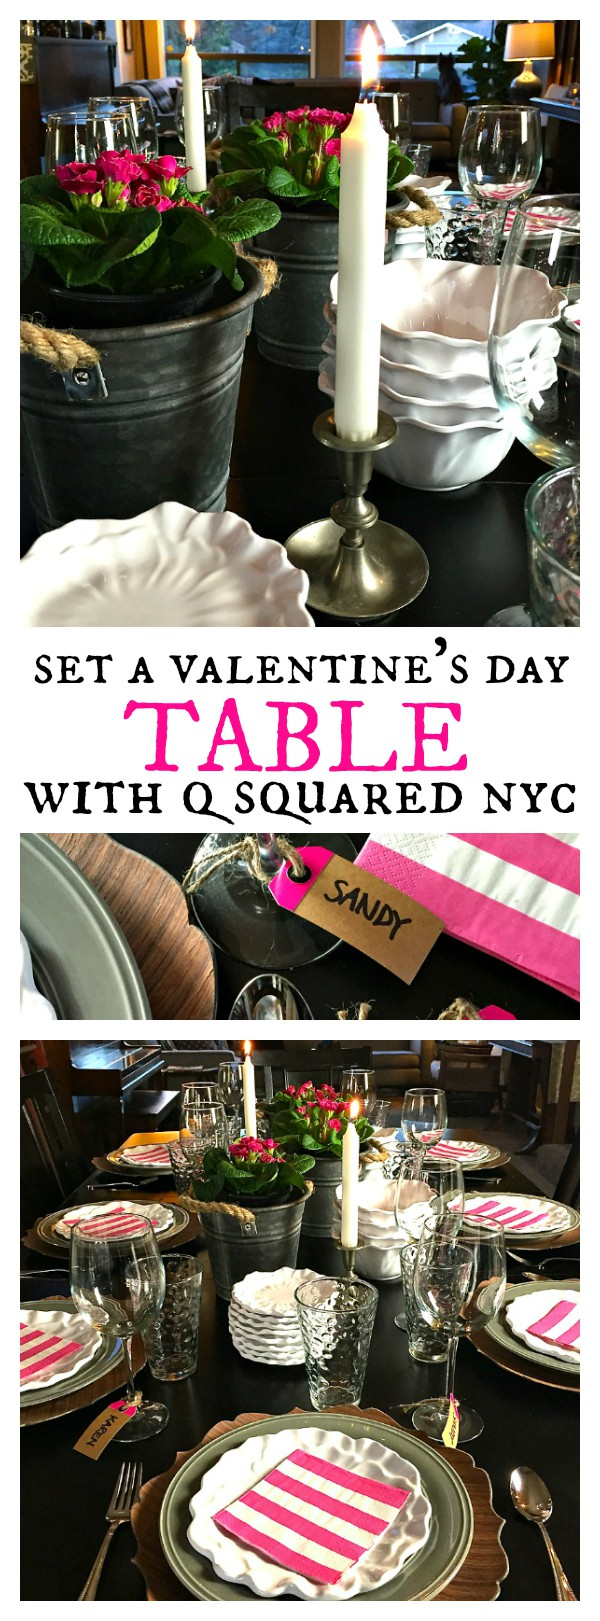 Set a Valentine's Day Table with Q Squared NYC + Chicken Enchilada Soup recipe